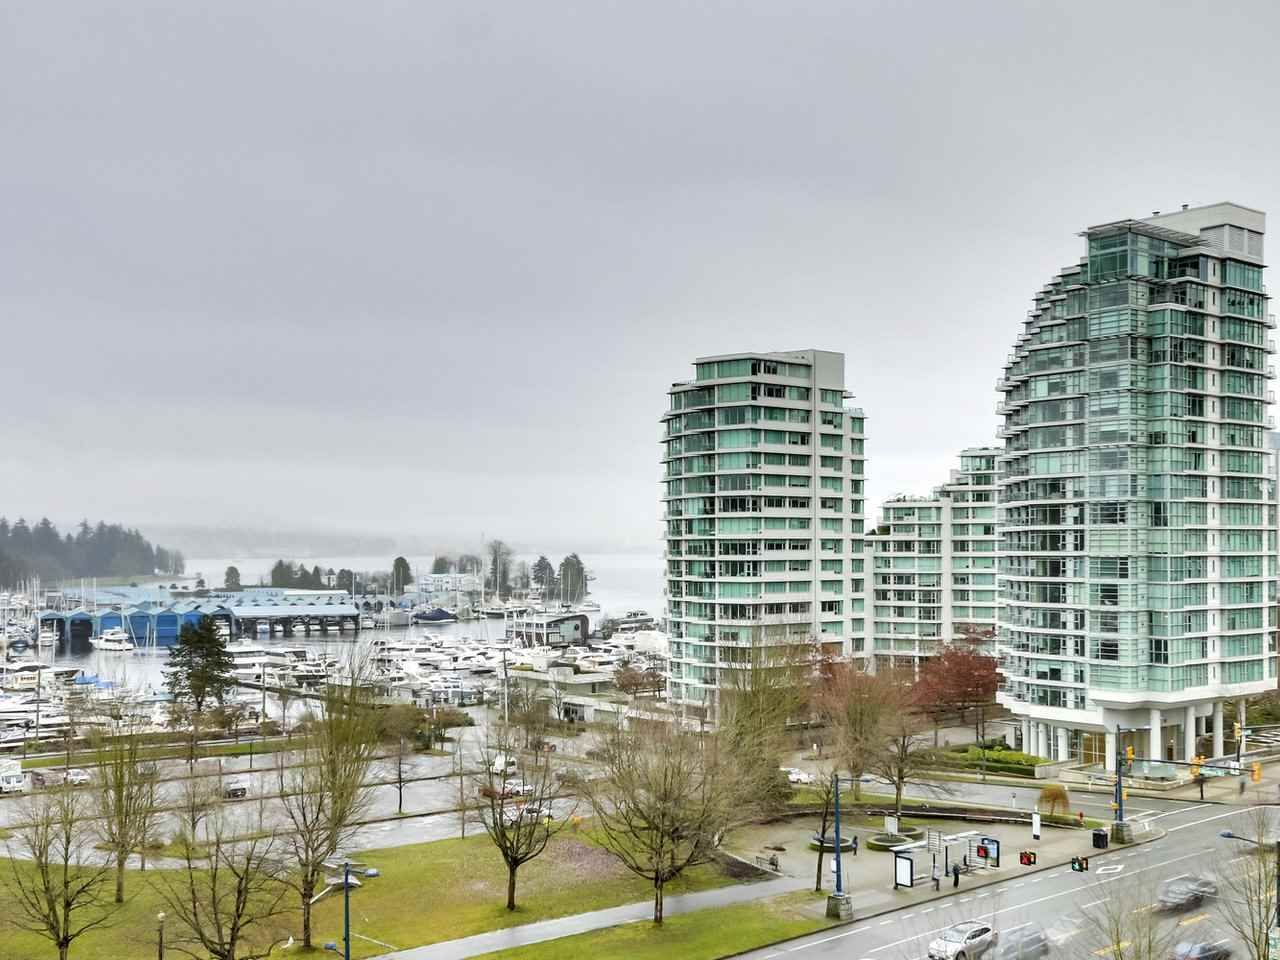 Main Photo: 1006 1889 AlberniL Street in Vancouver: West End VW Condo for sale (Vancouver West)  : MLS®# R2527613